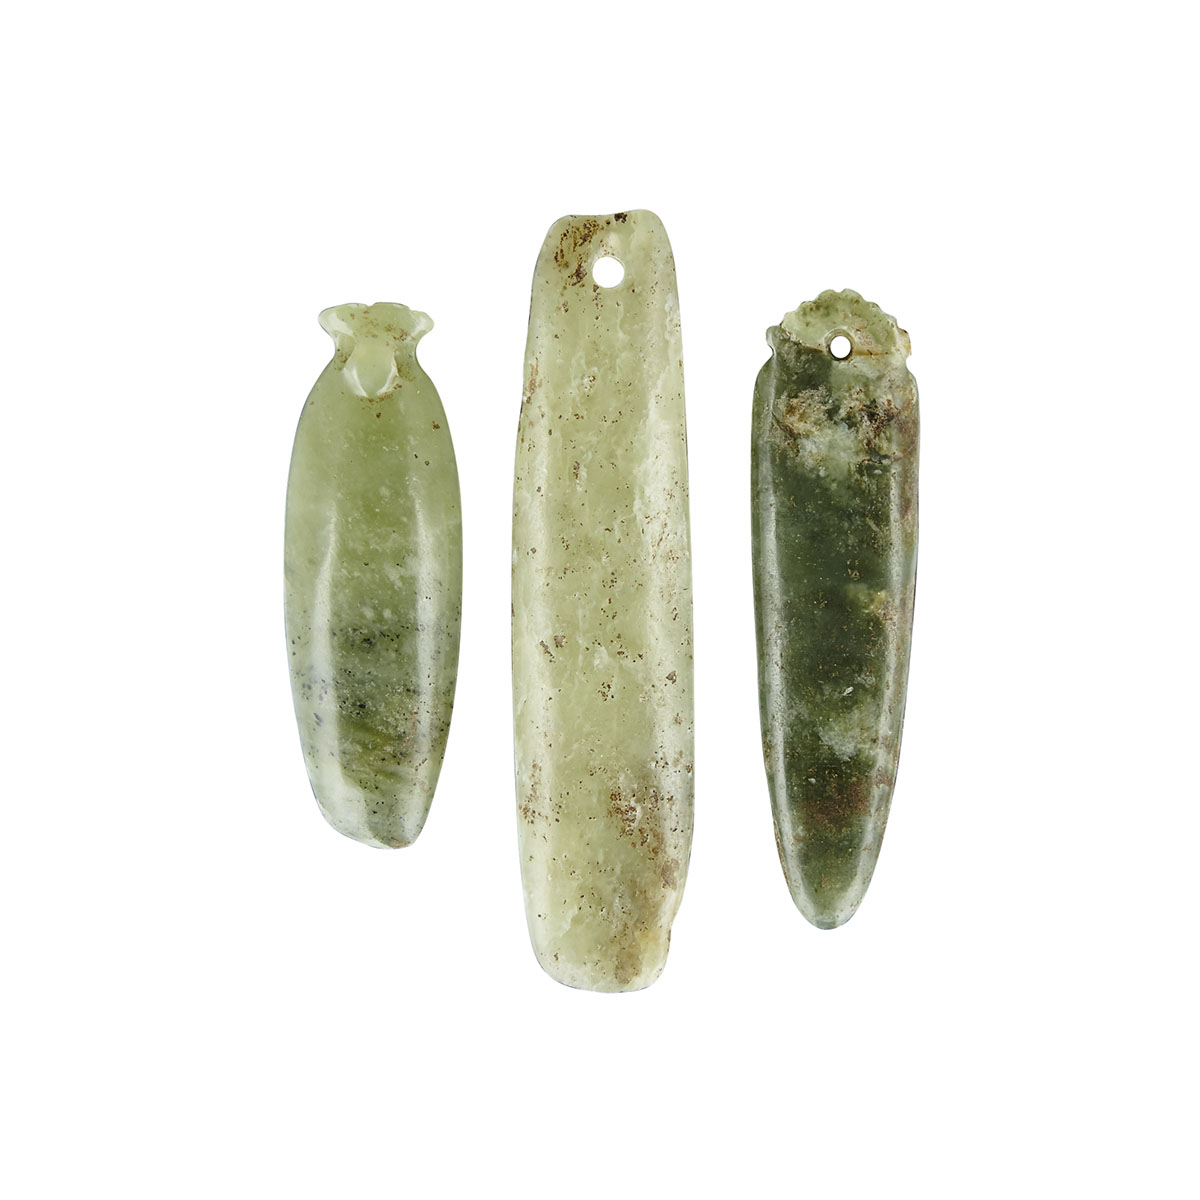 A Set of Three Ritual Jade Bars, Hongshan Culture, Neolithic Period or Later